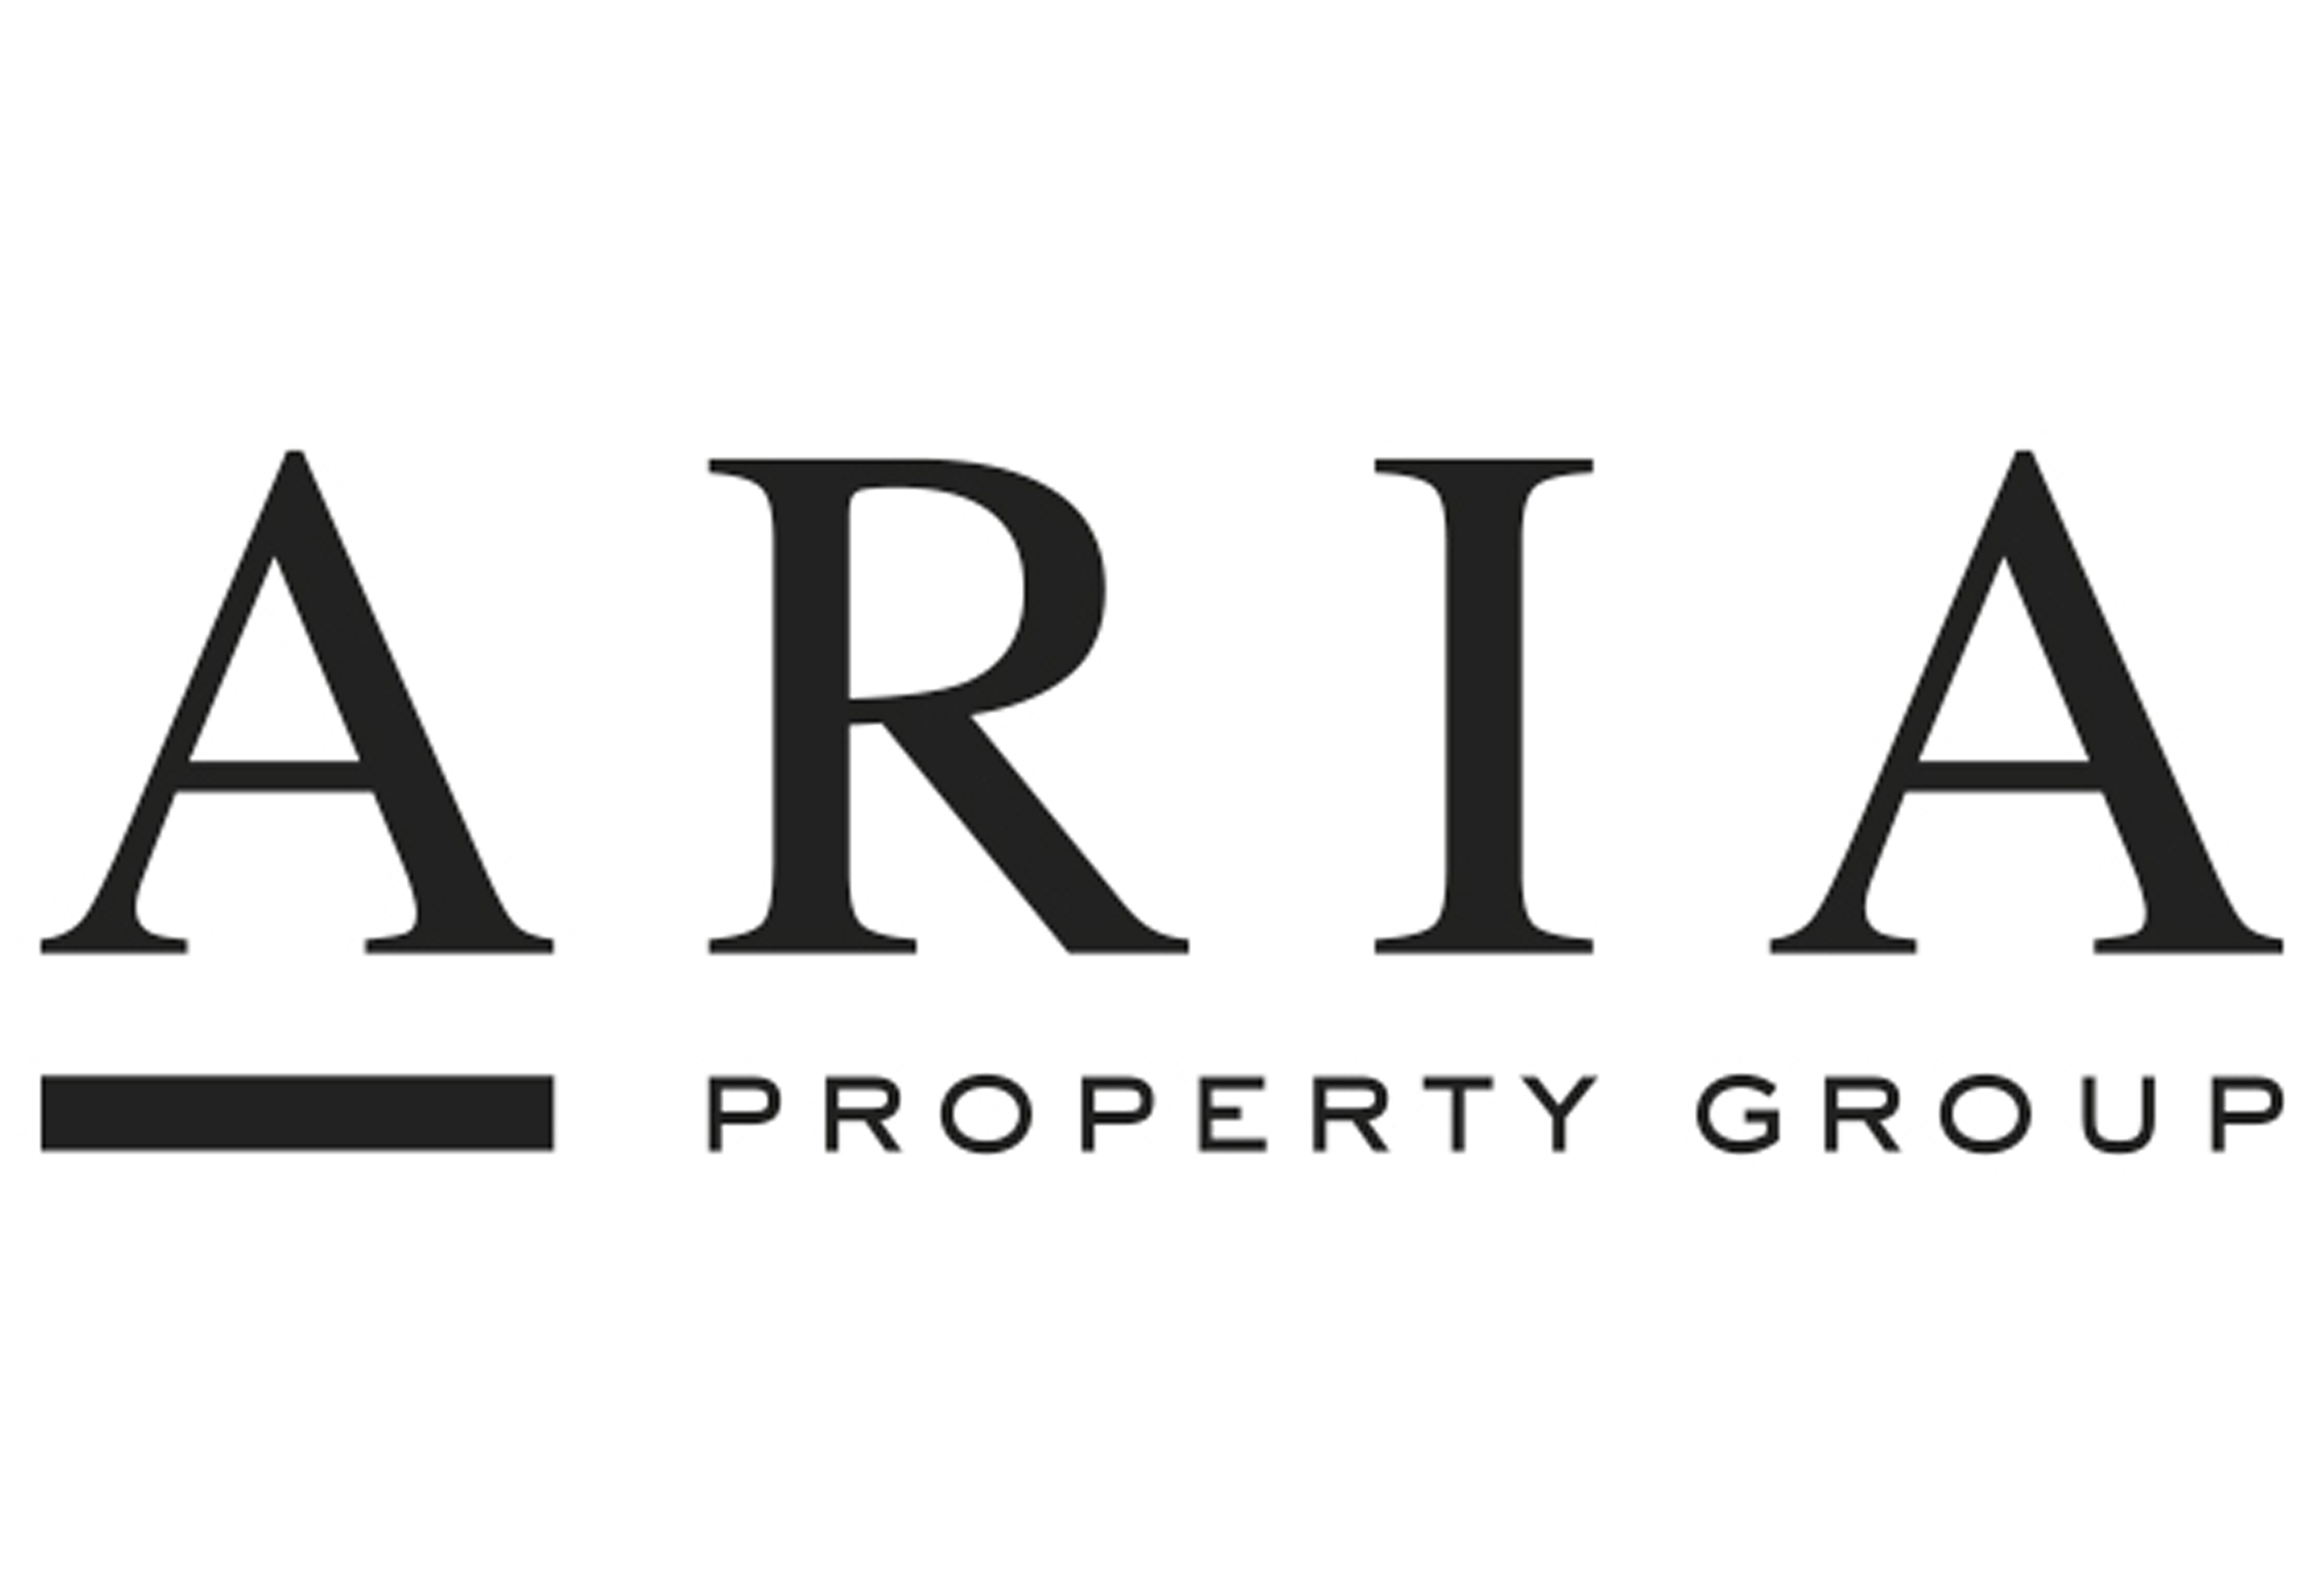 Aria centred logo